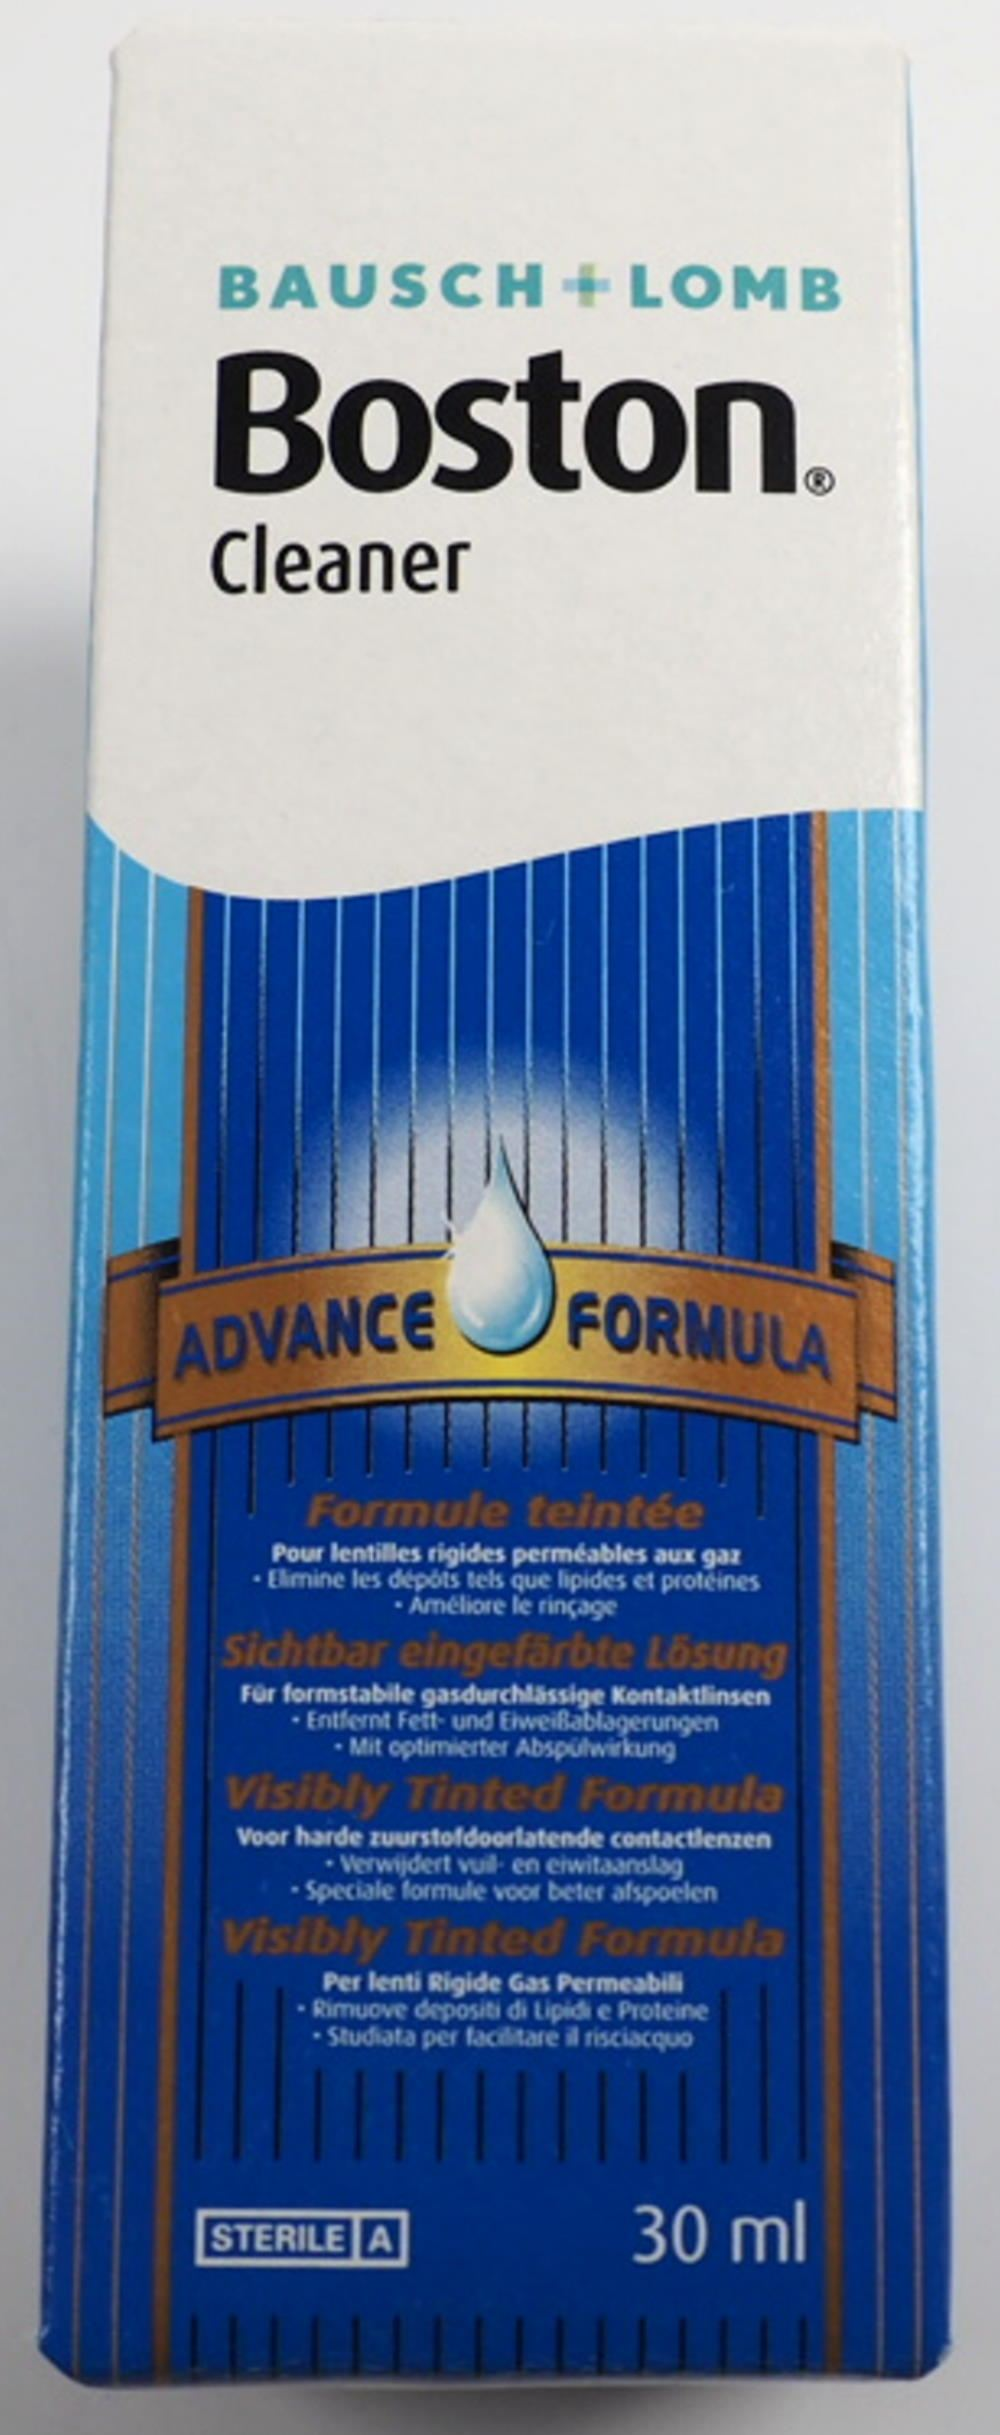 Boston Cleaner 30ml Advance Formular